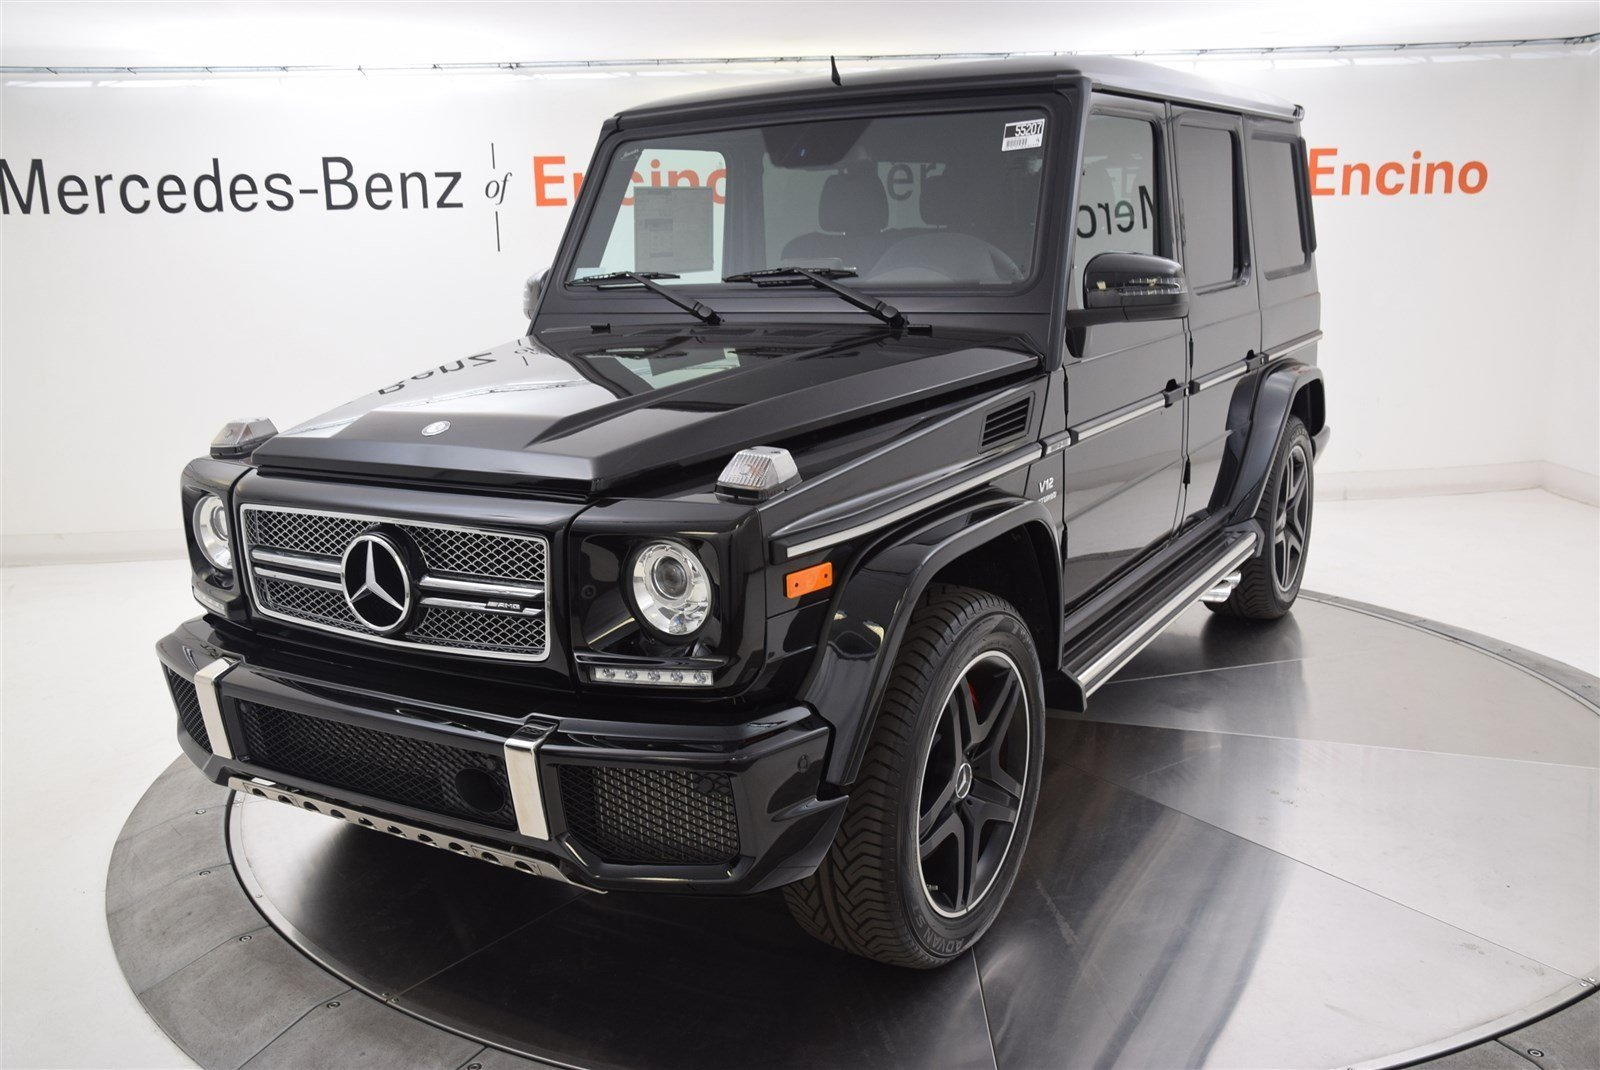 new 2016 mercedes benz g class g 65 amg suv suv in encino. Black Bedroom Furniture Sets. Home Design Ideas